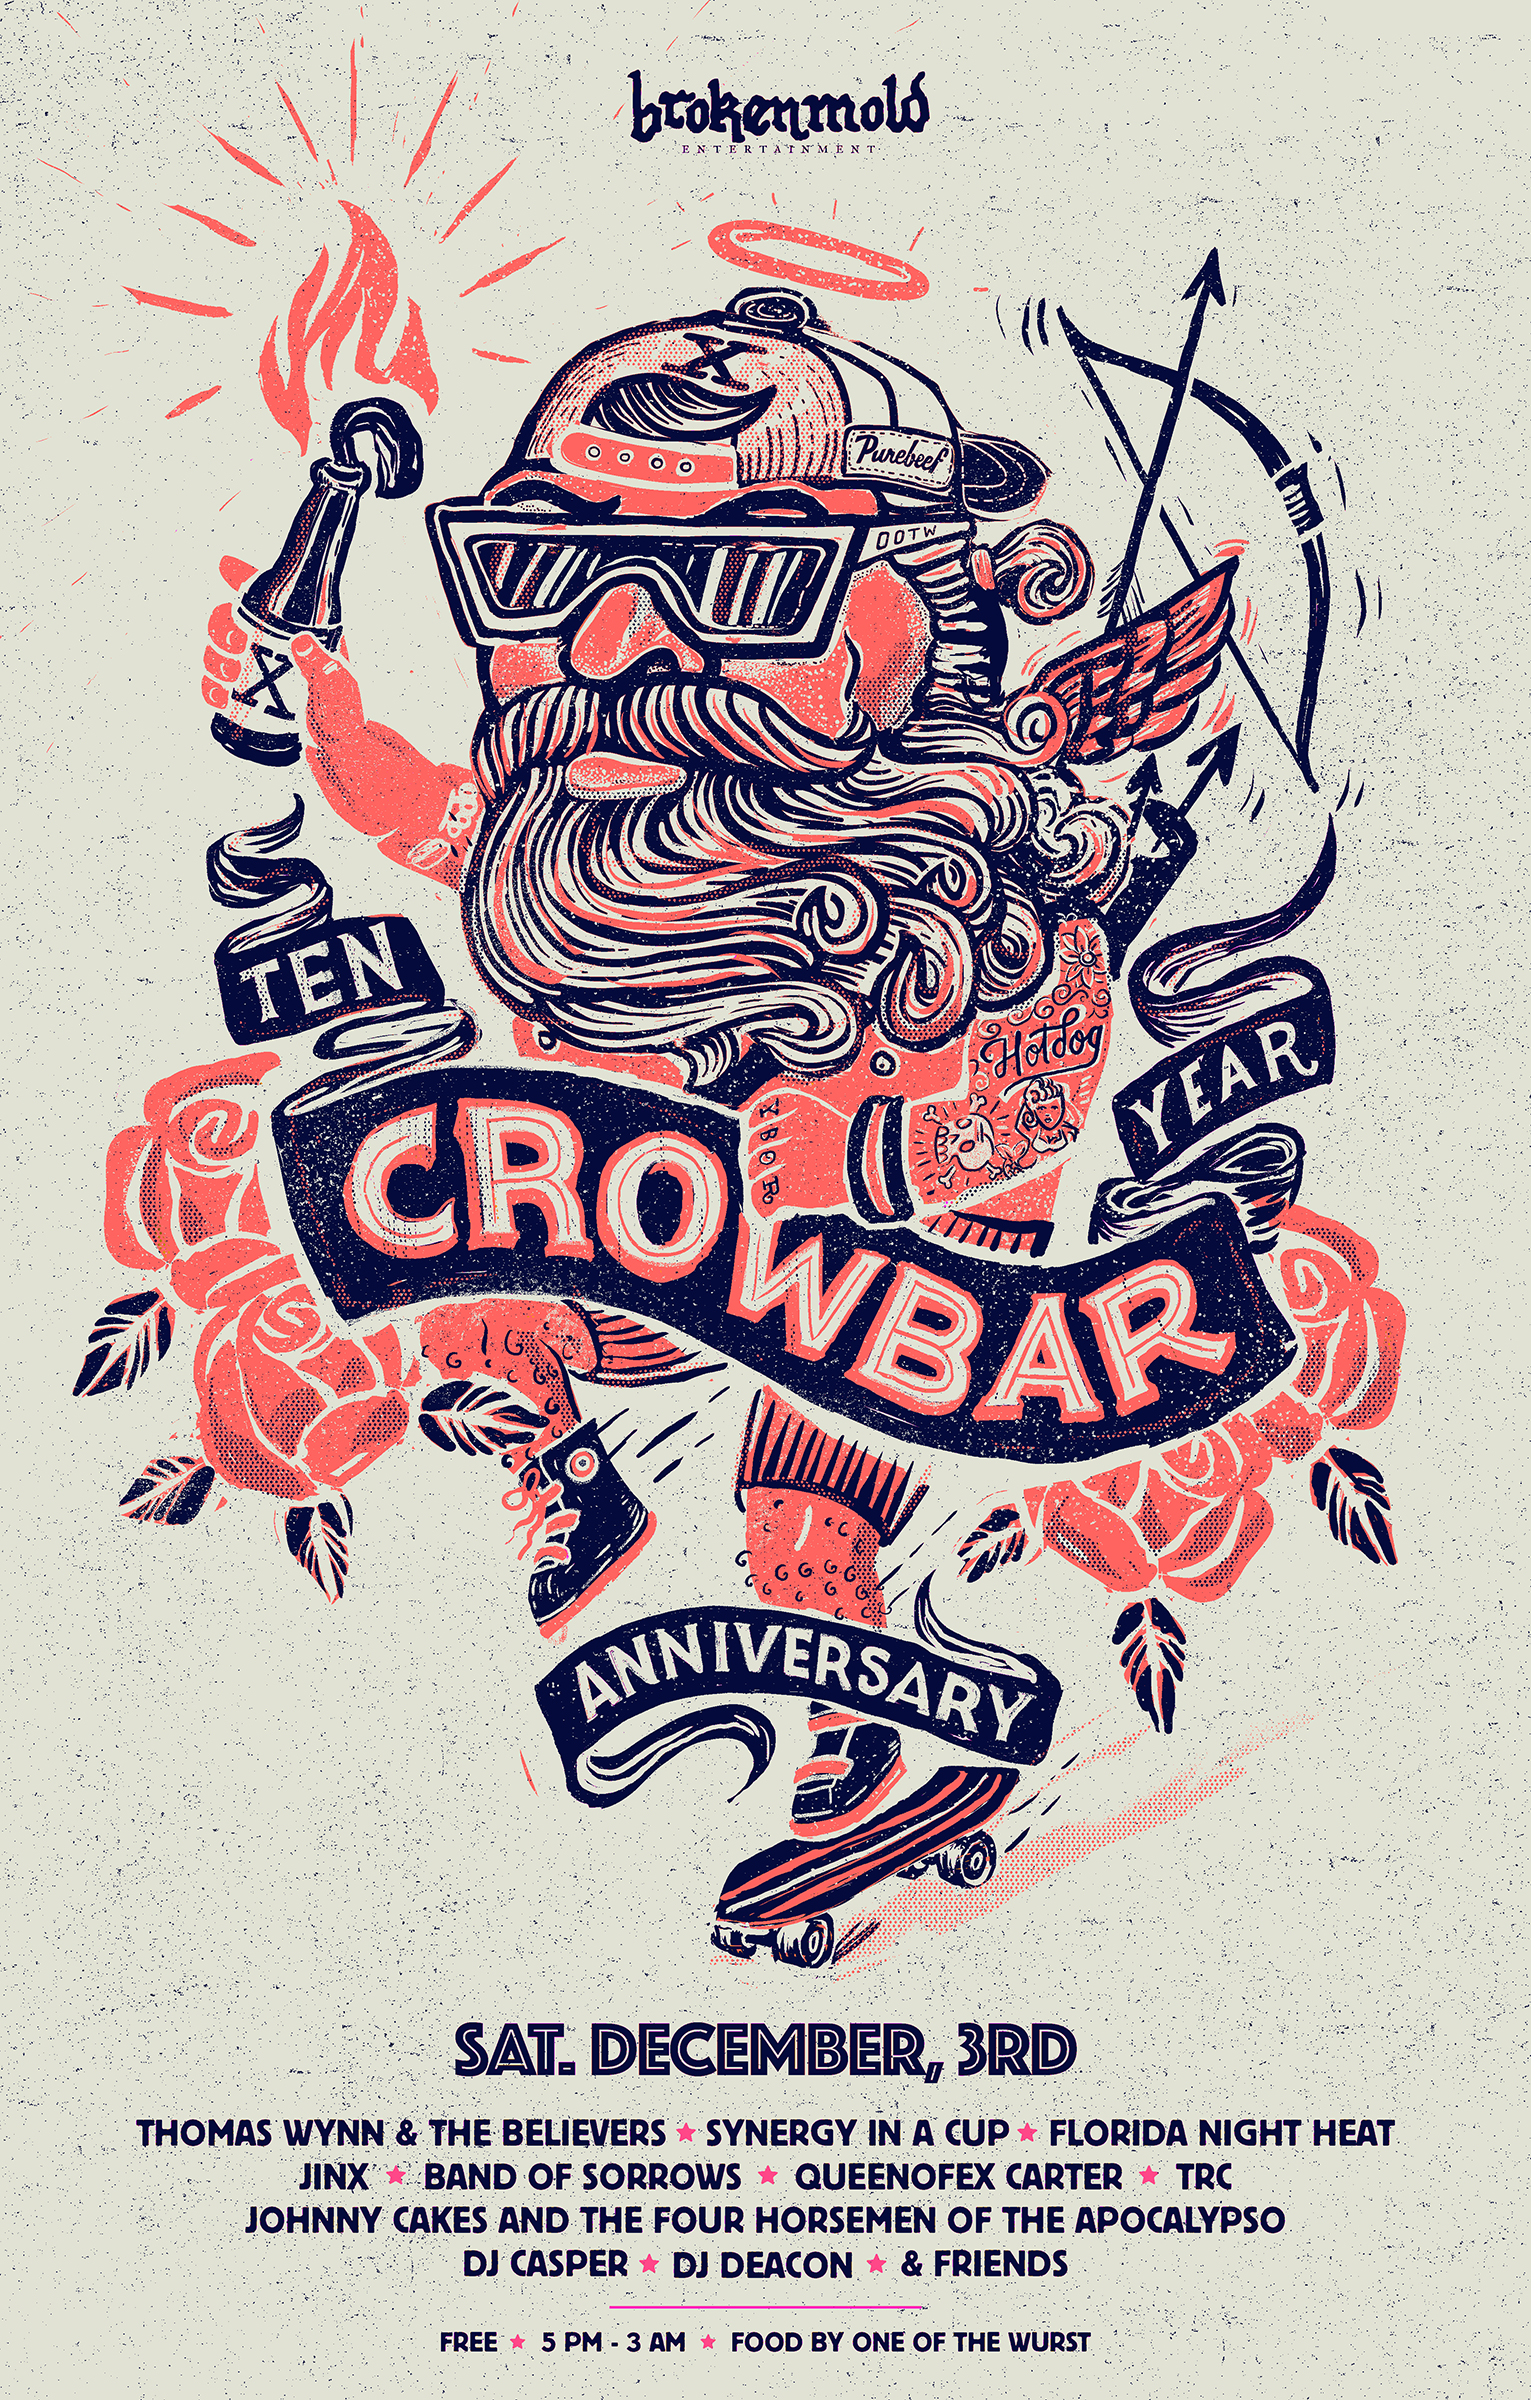 CROWBAR 10 YEAR 11-14-16 web.jpg